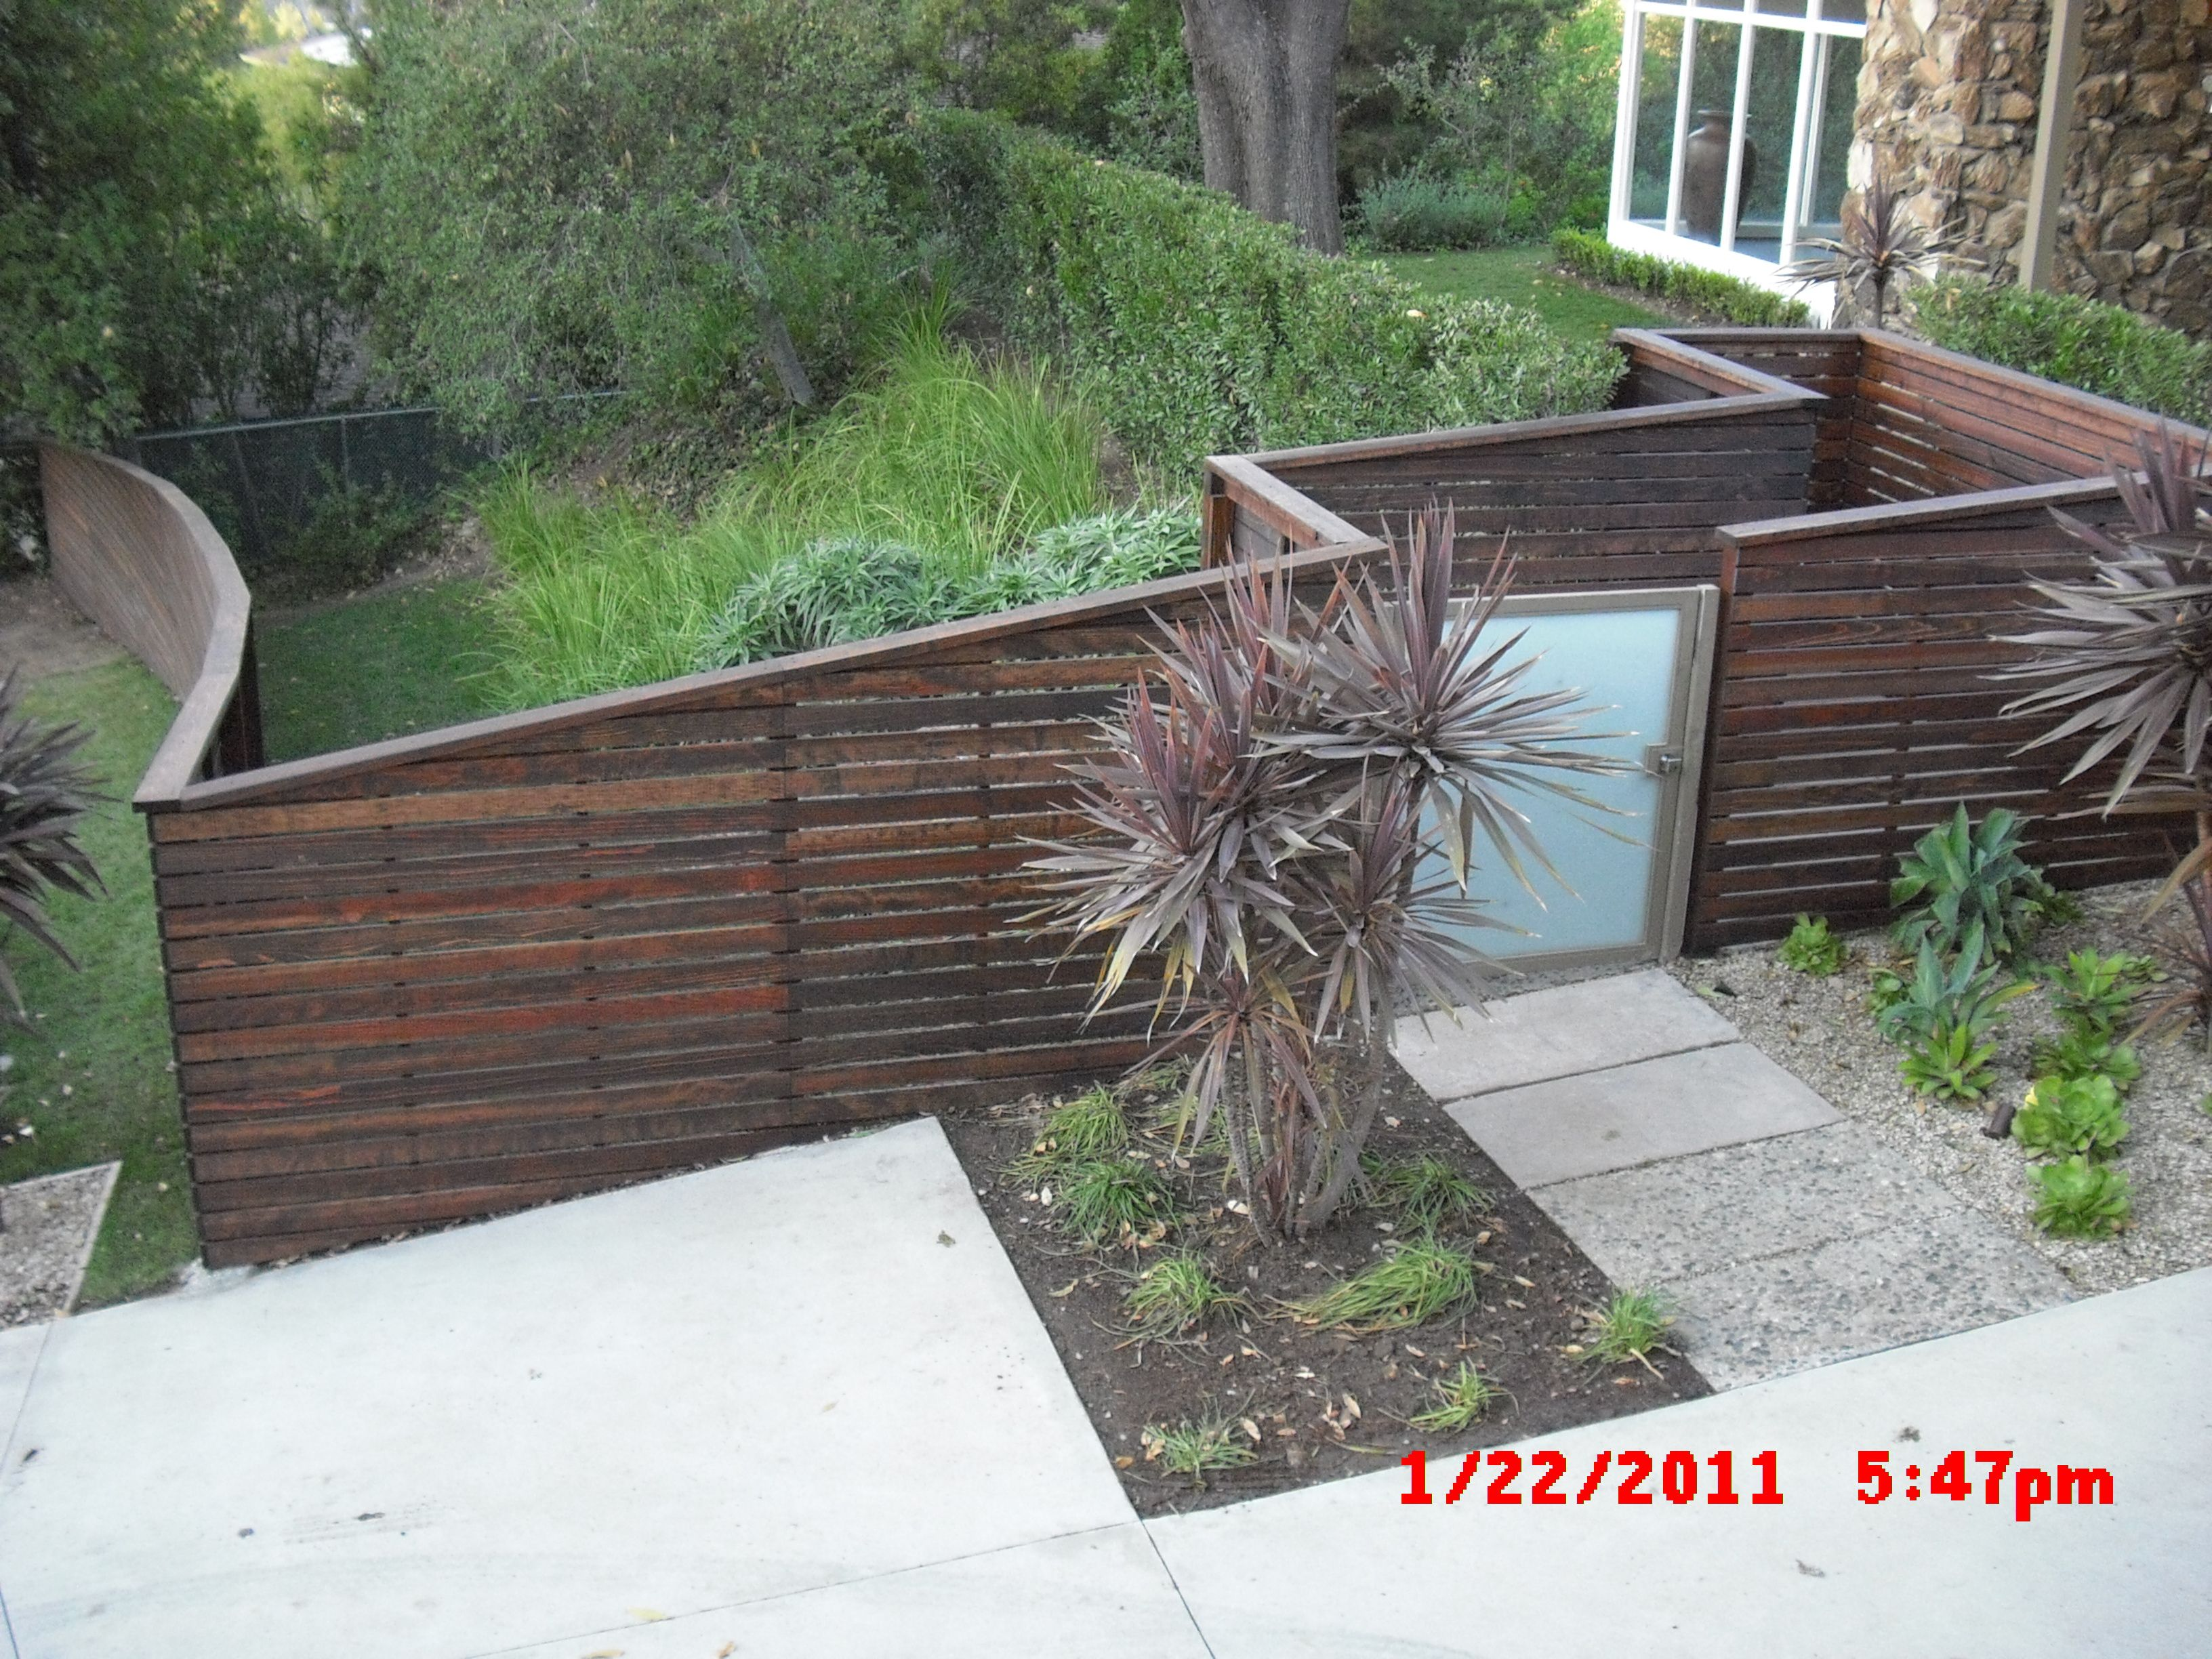 Wood color and slat width fence ideas pinterest yard gates exteriorhorizontal railing timber brown front fence ideas with stepped design plus frosted door gate stunning front fence ideas to protect and security baanklon Images